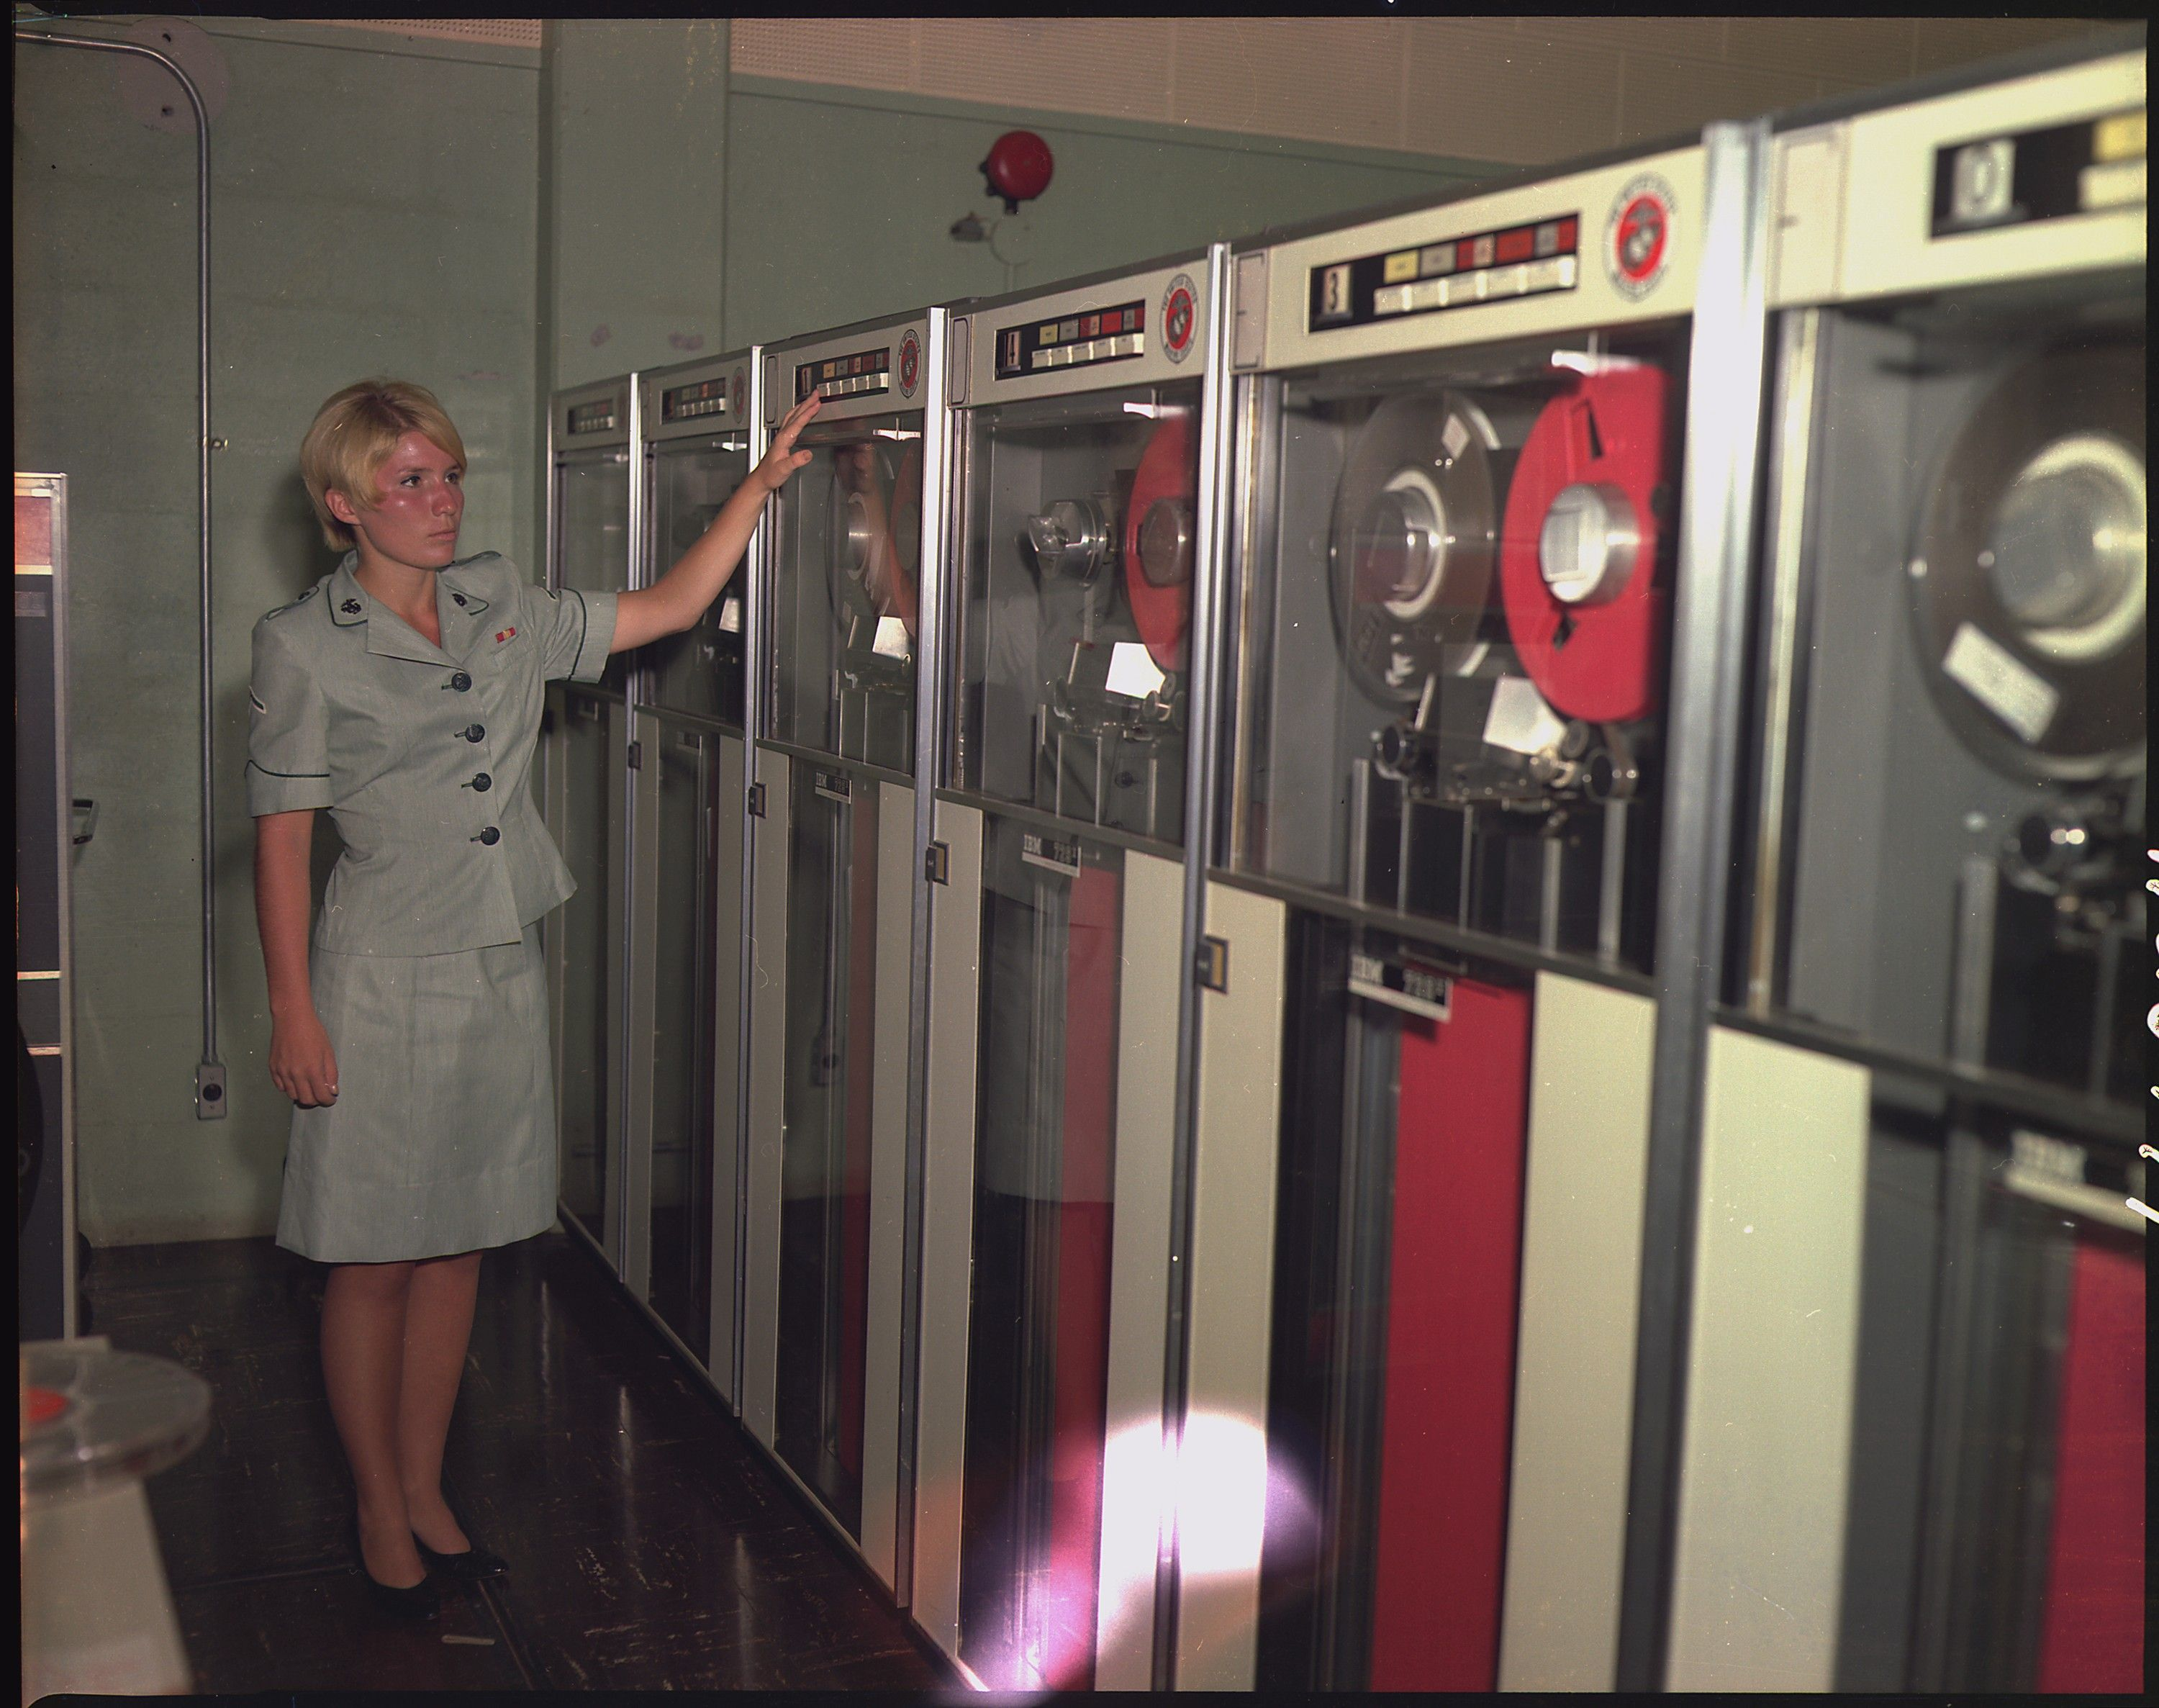 Pfc Patricia Barbeau Operates A Tape Drive On The Ibm 729